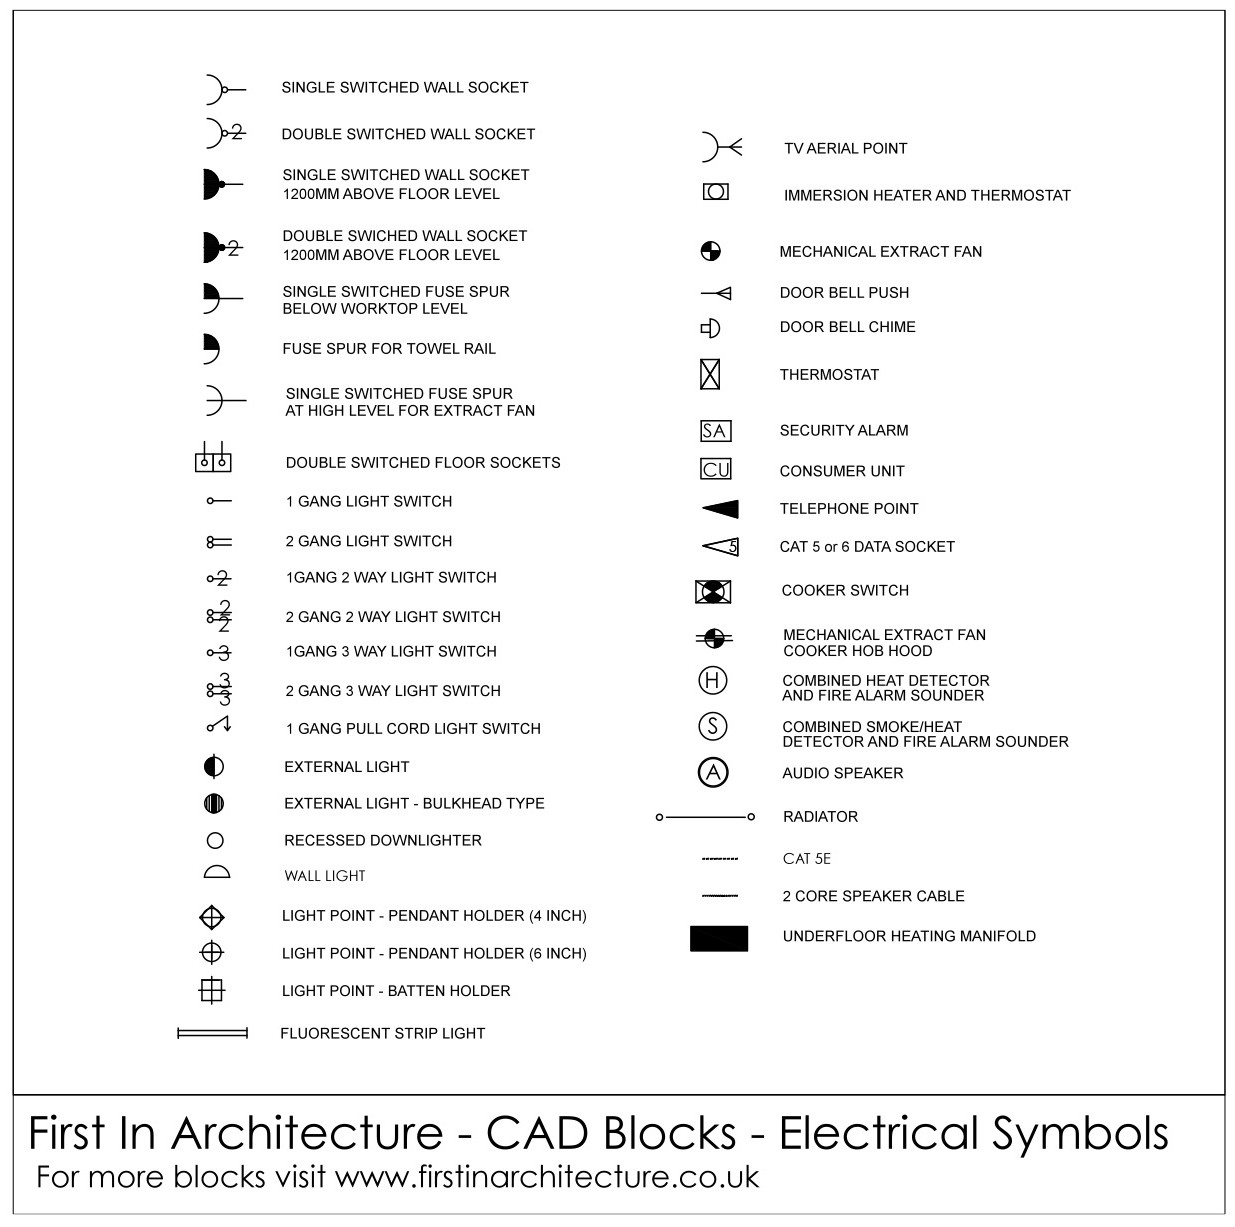 Wiring Schematic Symbols And Meanings Free Cad Blocks Electrical